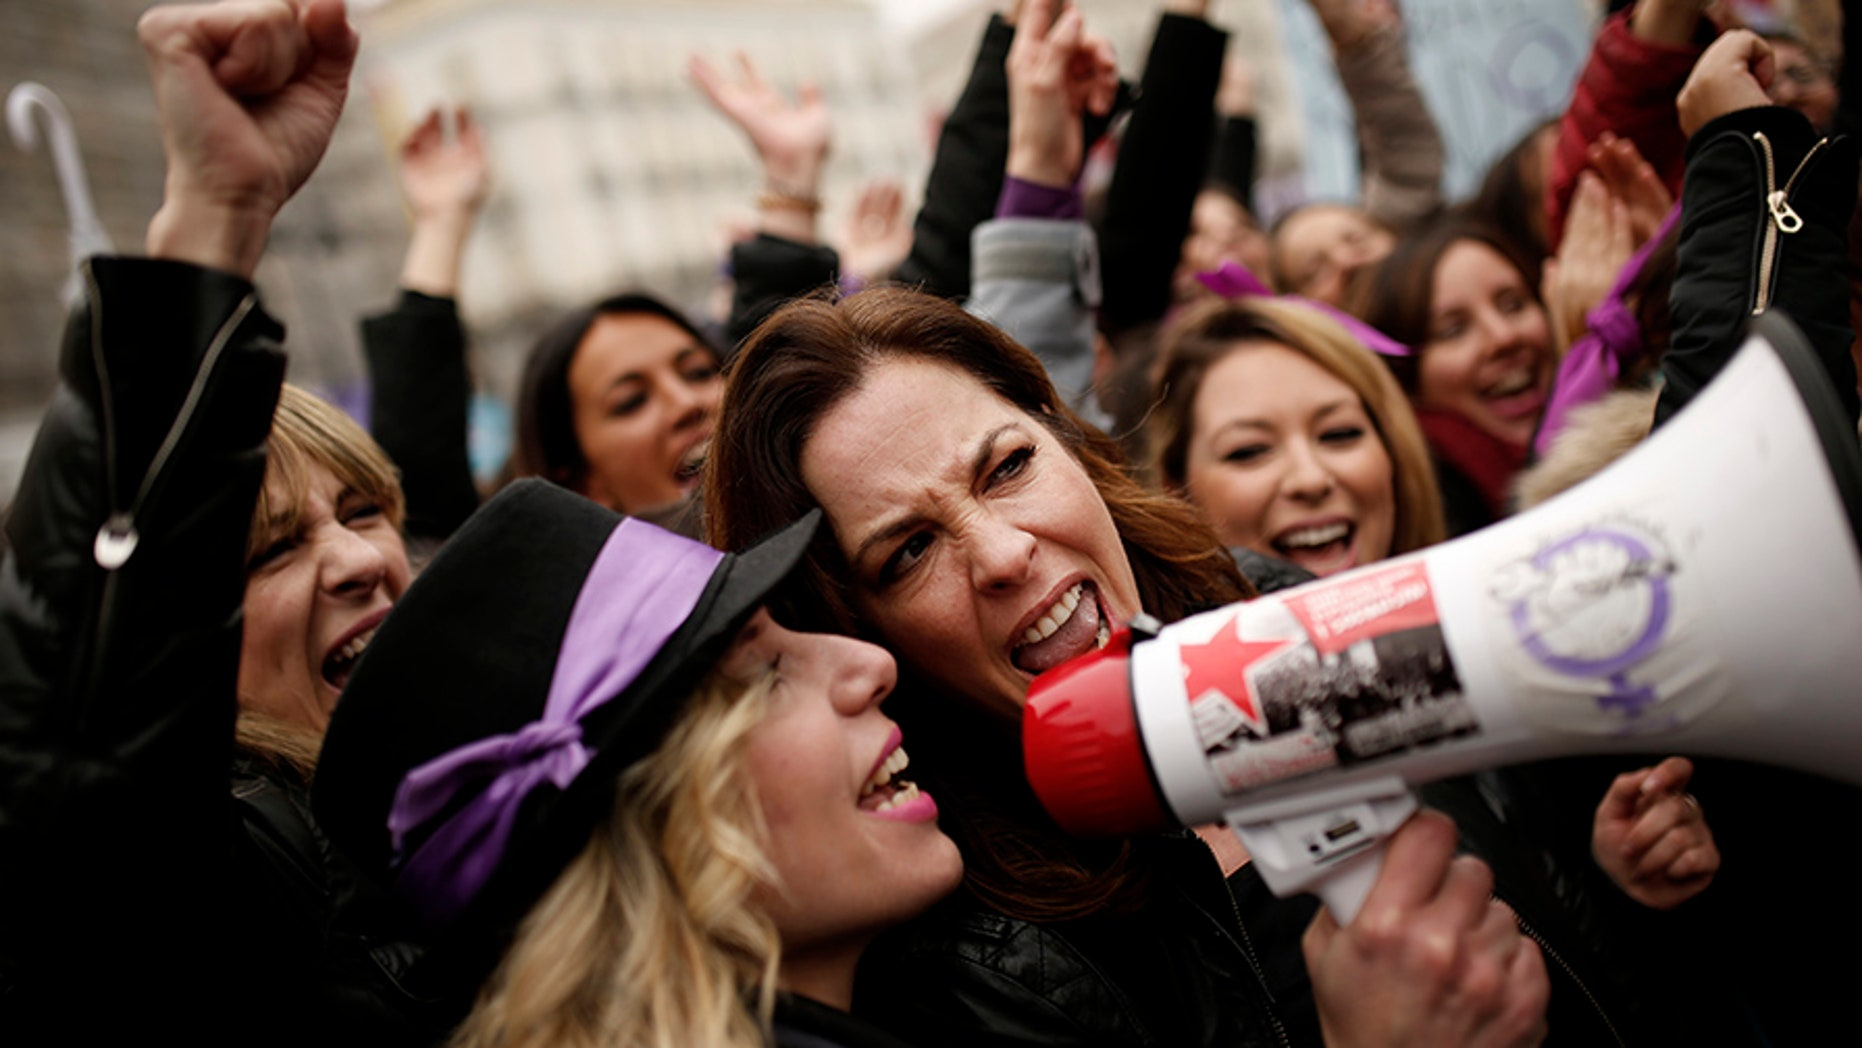 Women across the world are marking International Women's Day with protests and marches.